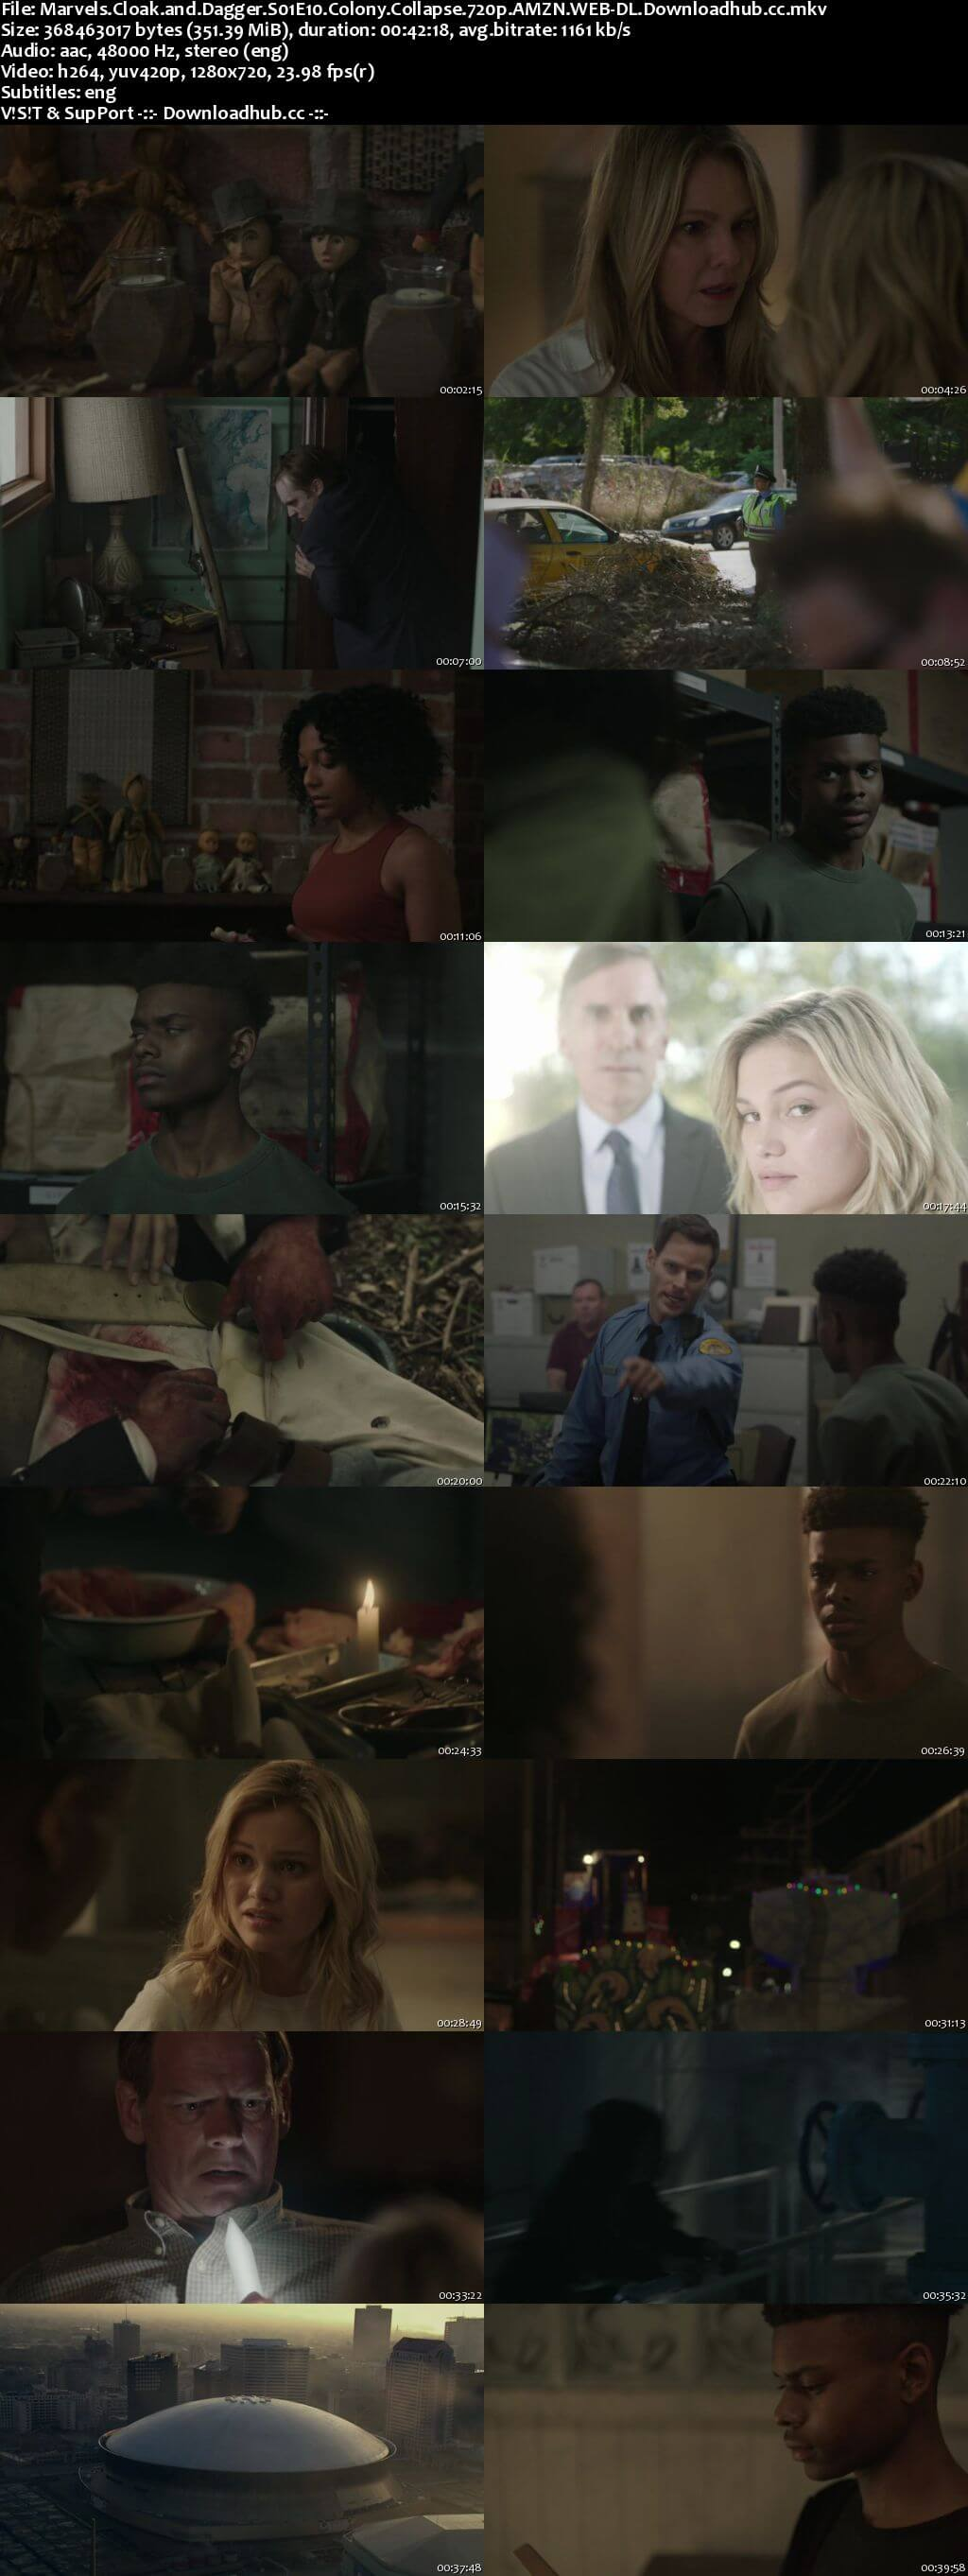 Cloak & Dagger S01E10 350MB WEB-DL 720p ESubs